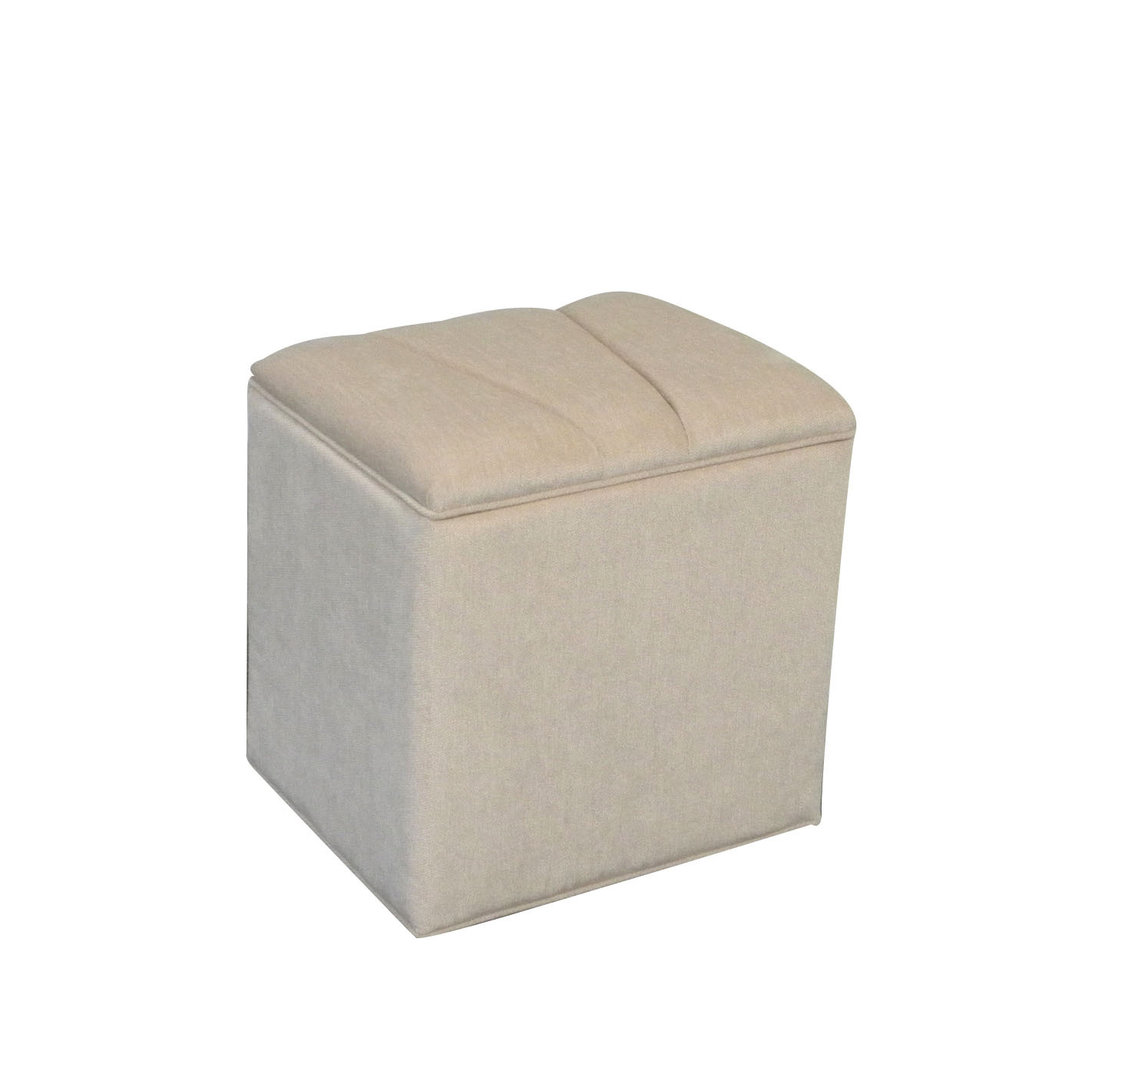 Luxurious Designer Florence Ottoman Storage Box linen storage chest in Beige